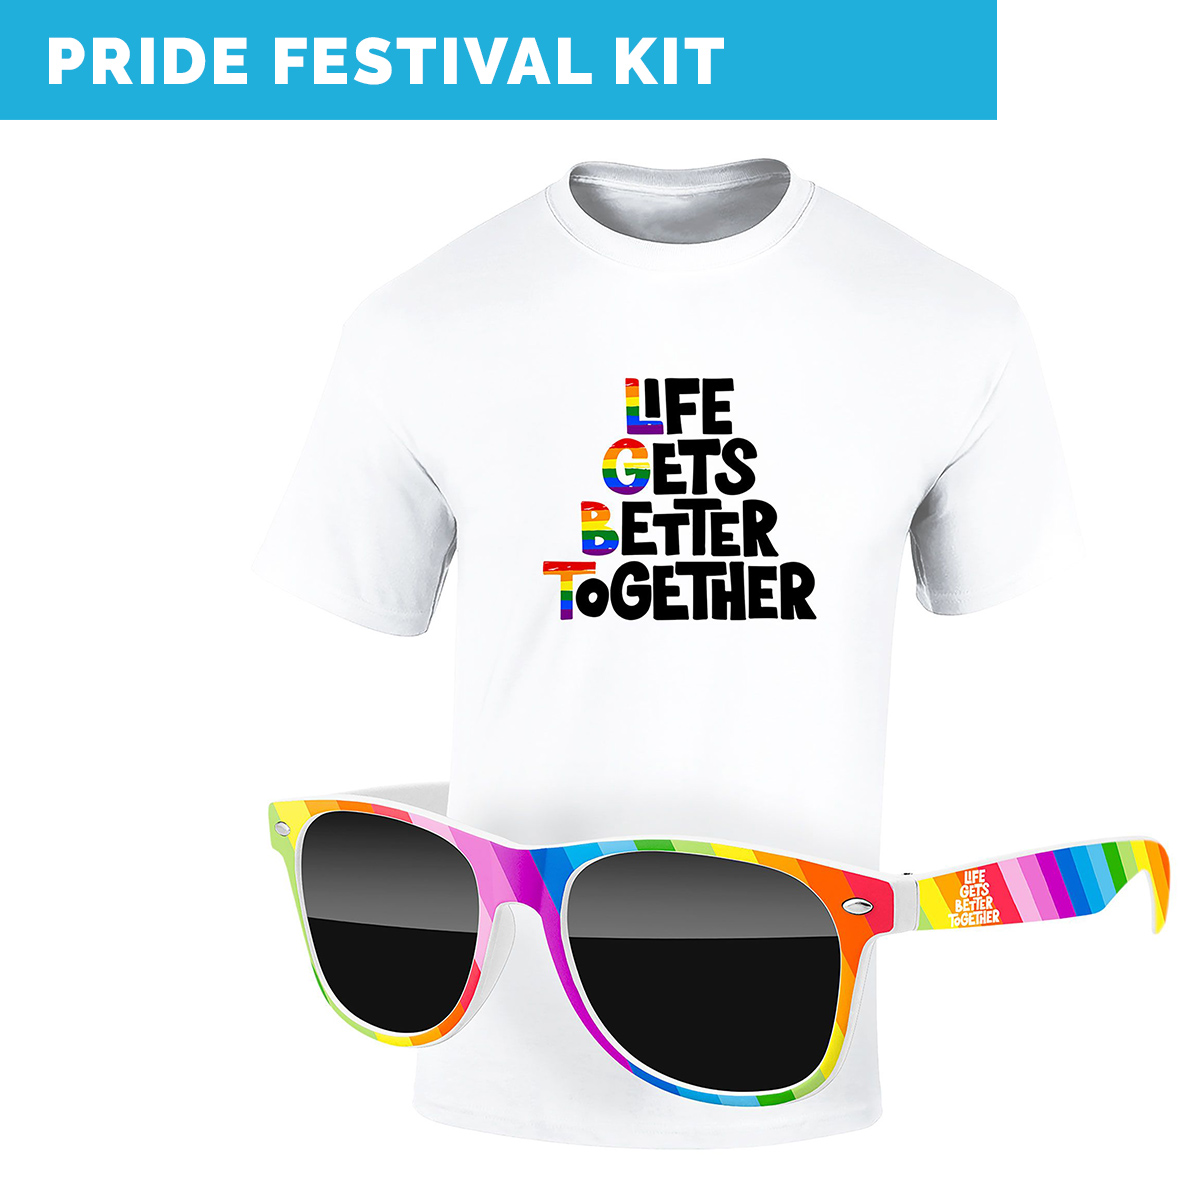 Work From Home Kits-virtual pride festival kit includes custom printable t-shirt and rainbow sunglasses